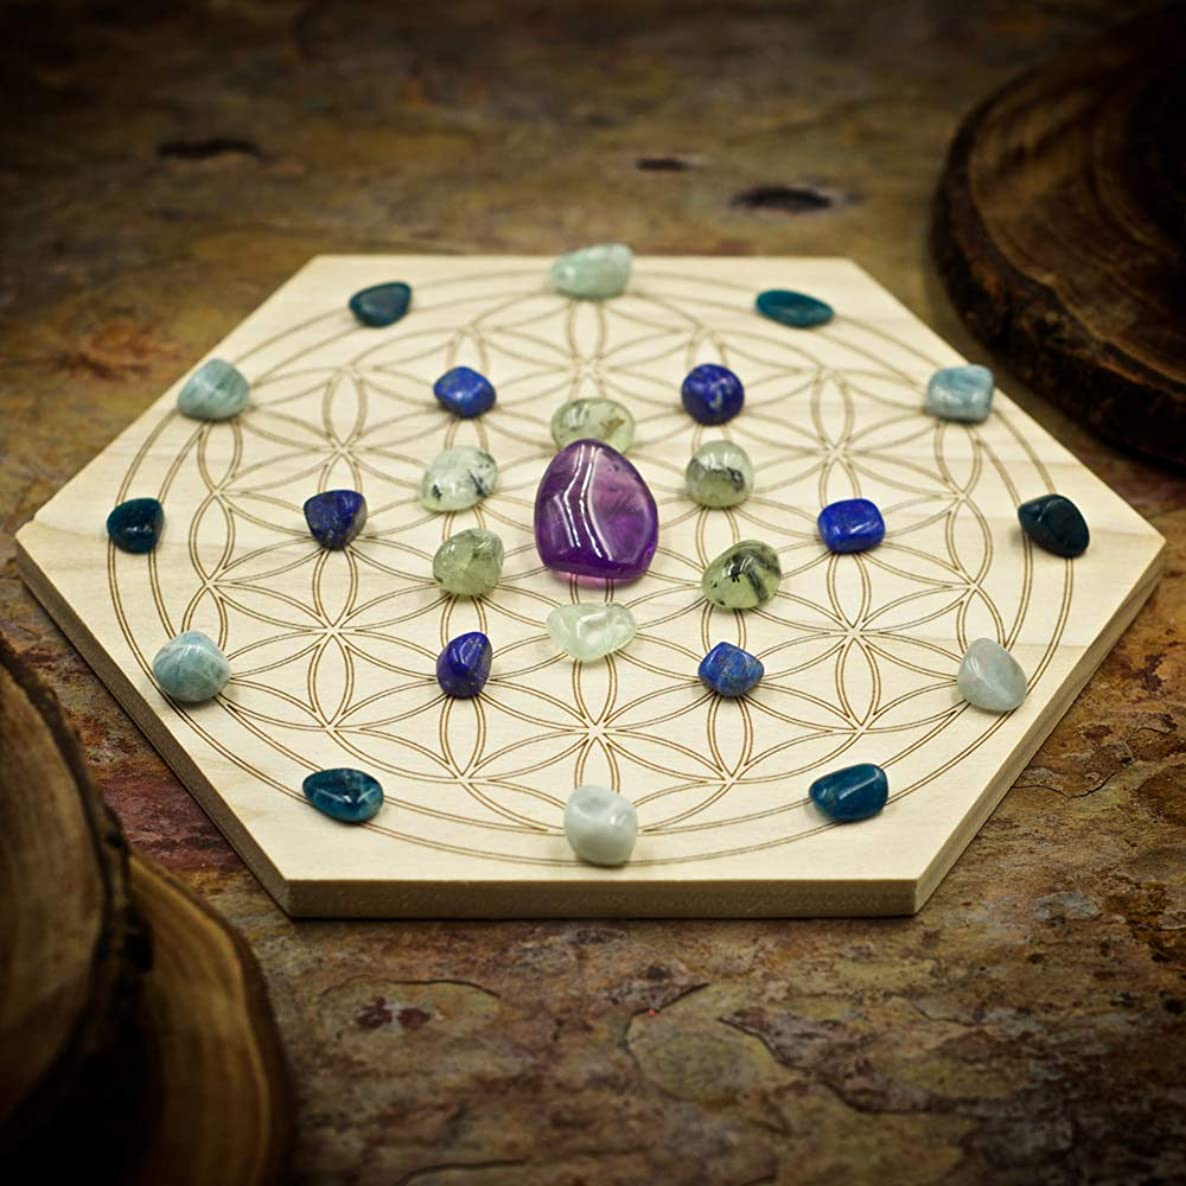 Psychic Gifts Mini Crystal Grid Set with 6 inch Sacred Geometry Grid Board, and Amethyst, Prehnite, Lapis Lazuli, Aquamarine, and Apatite